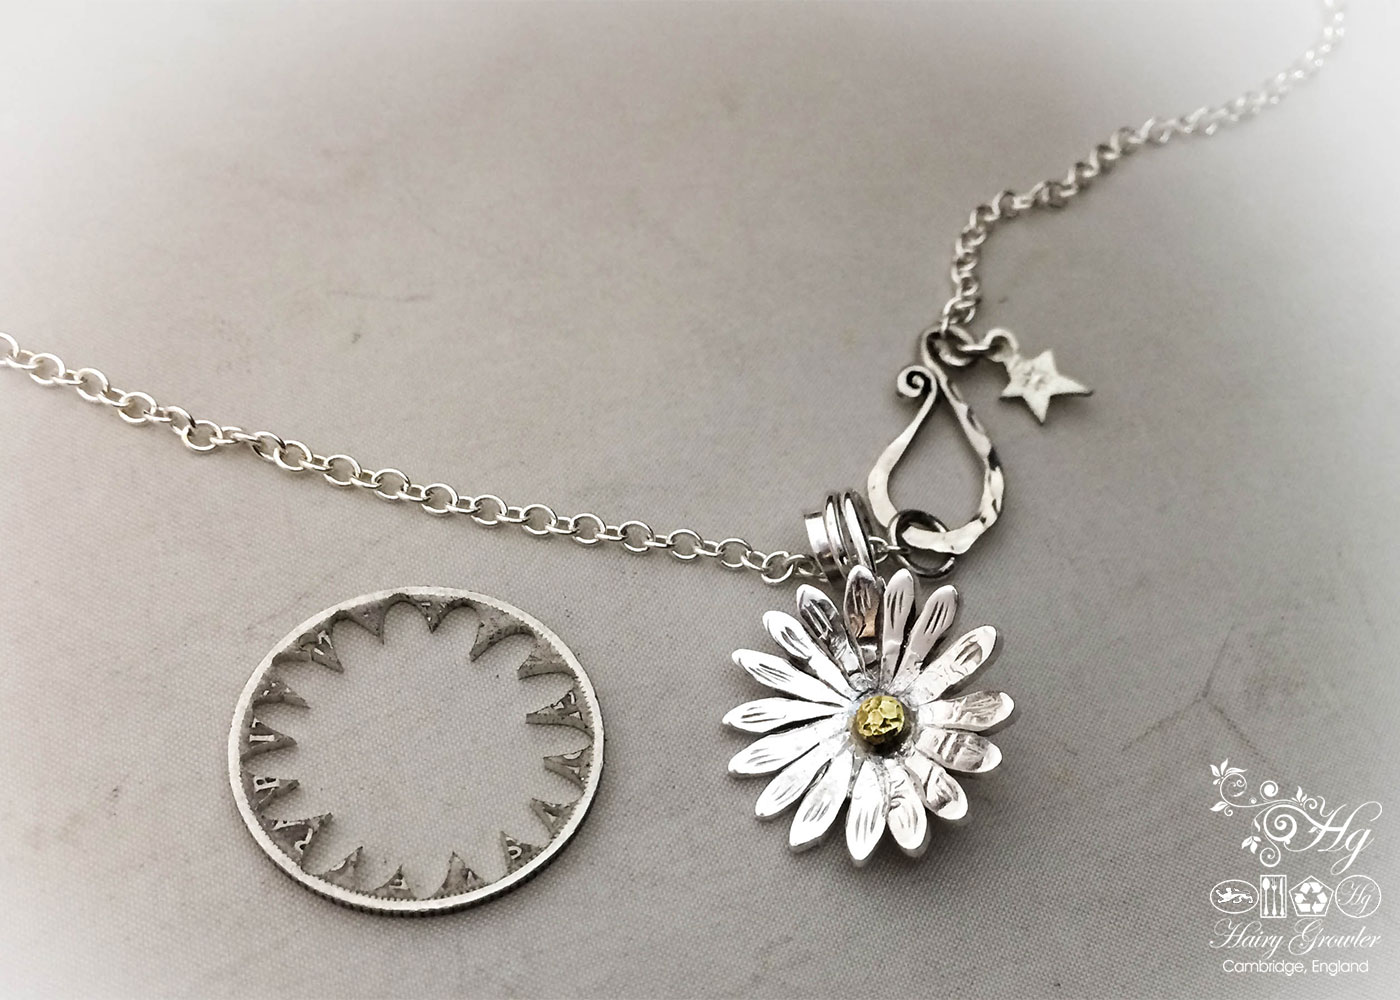 Handmade and upcycled sterling silver shilling daisy necklace